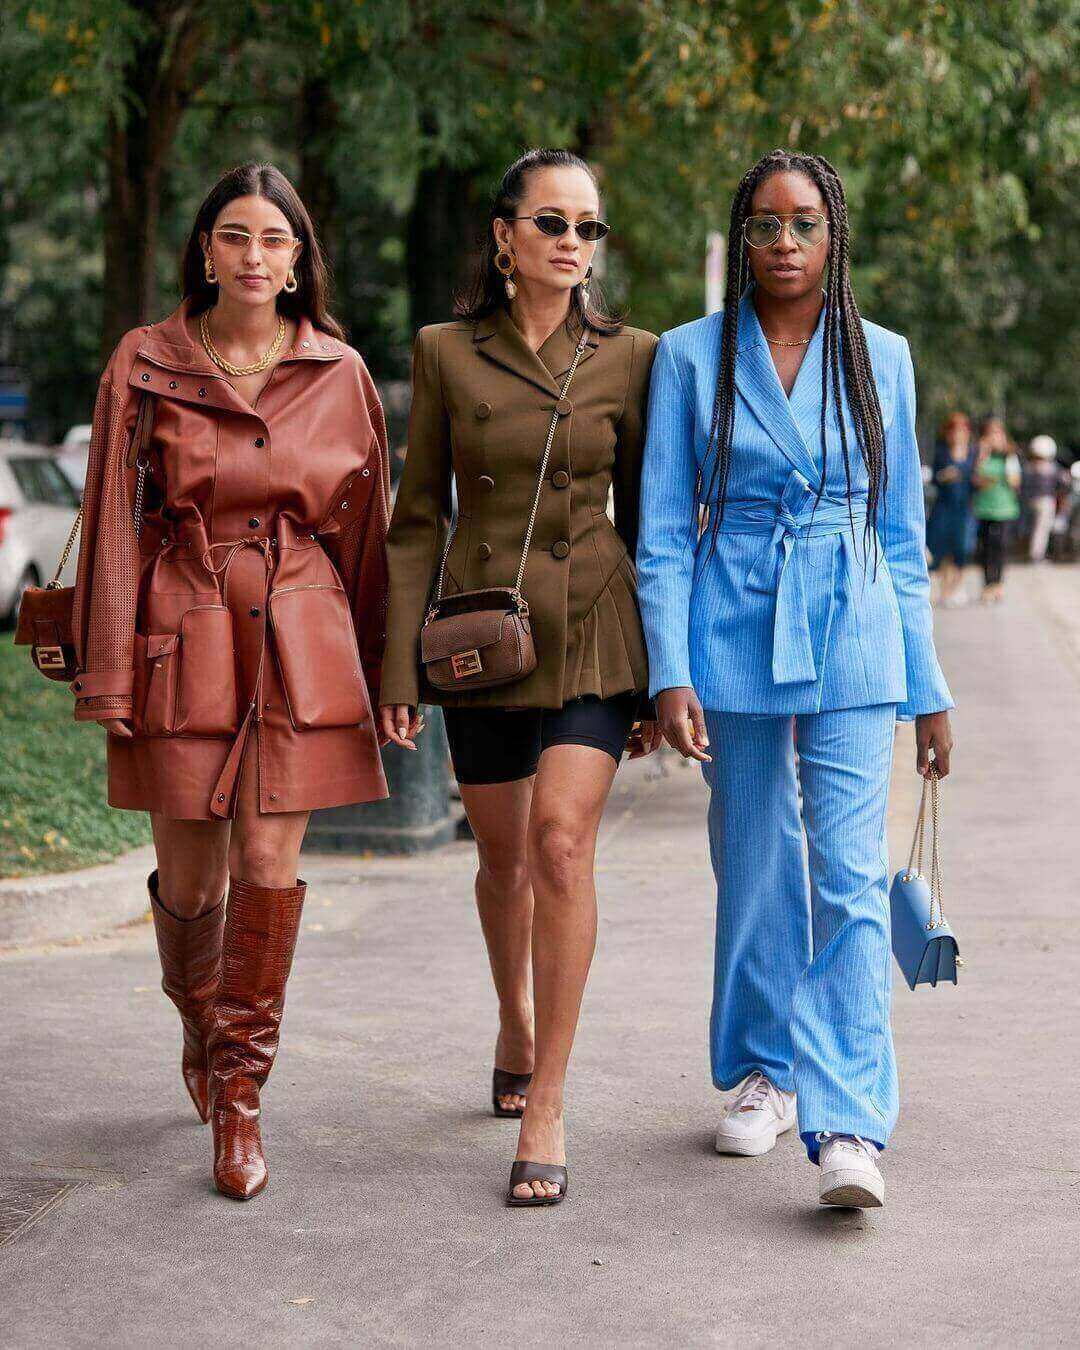 How To Dress in One Color?